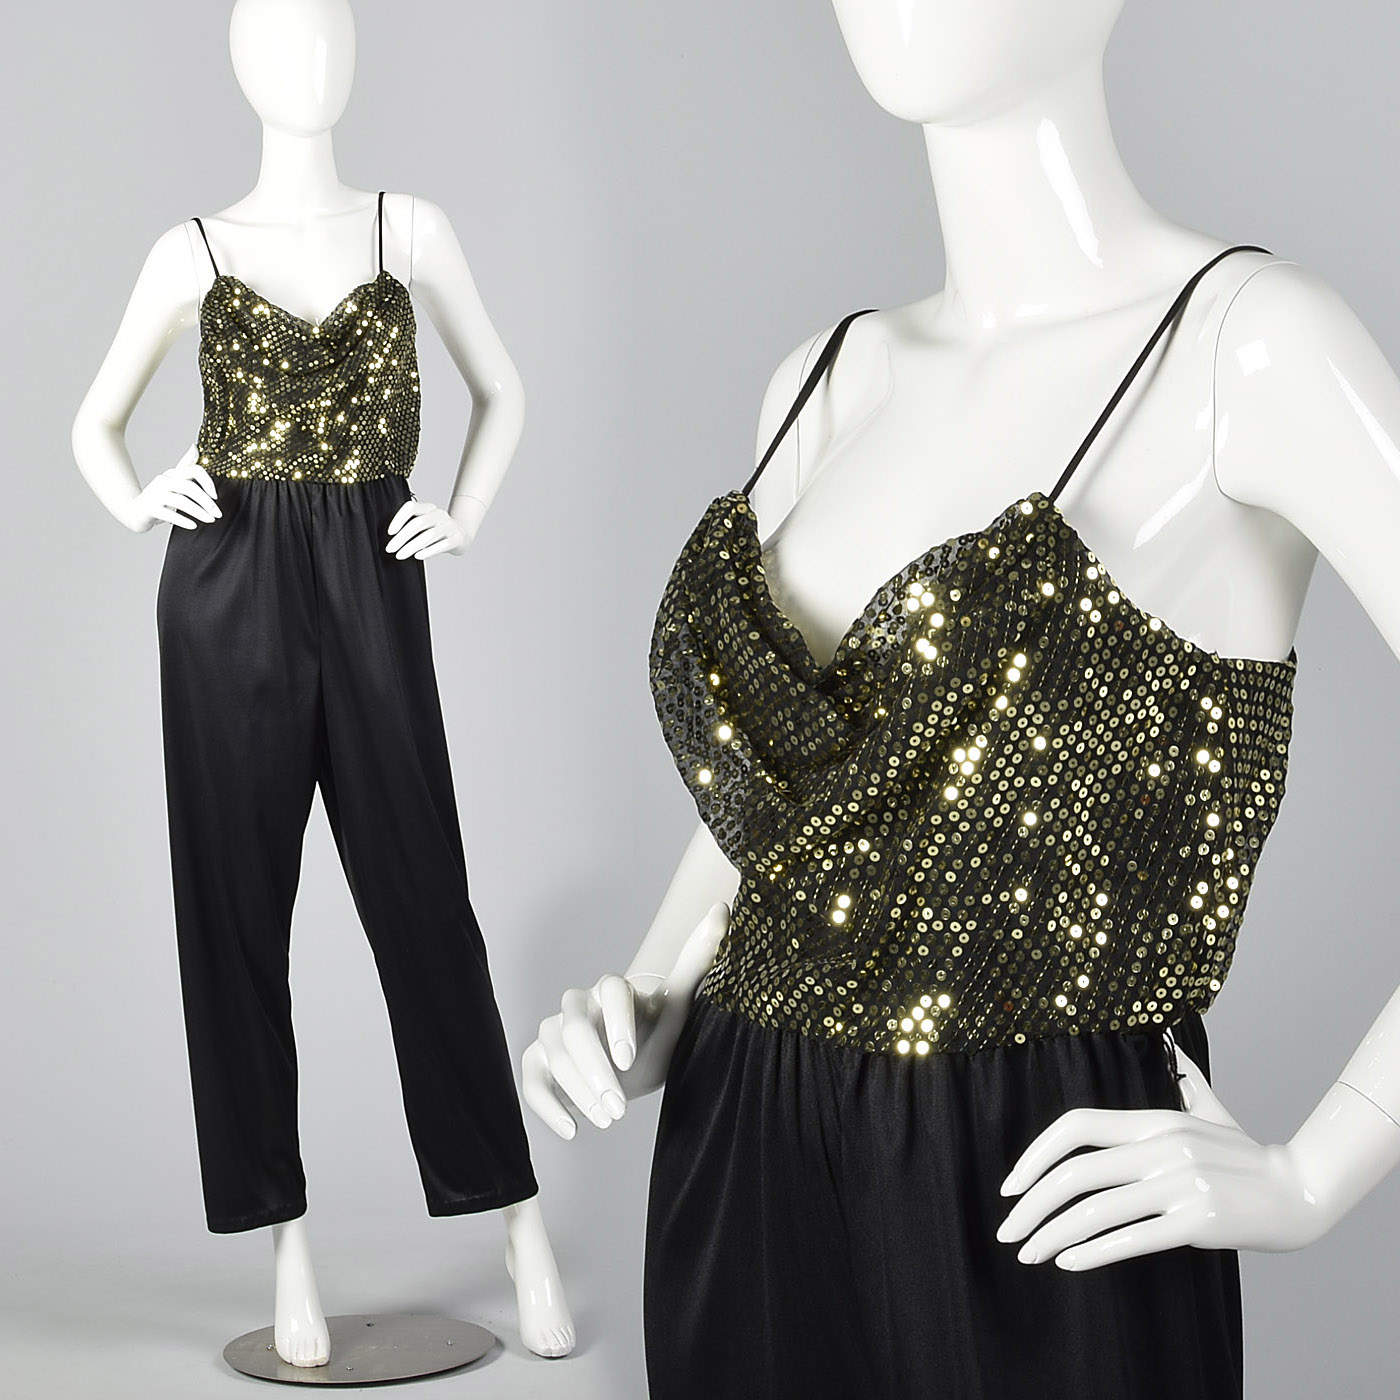 16cdf2097510 Details about M 1970s Gold Sequin Low Cut Jumpsuit Sexy Evening Wear Disco  Party Black 70s